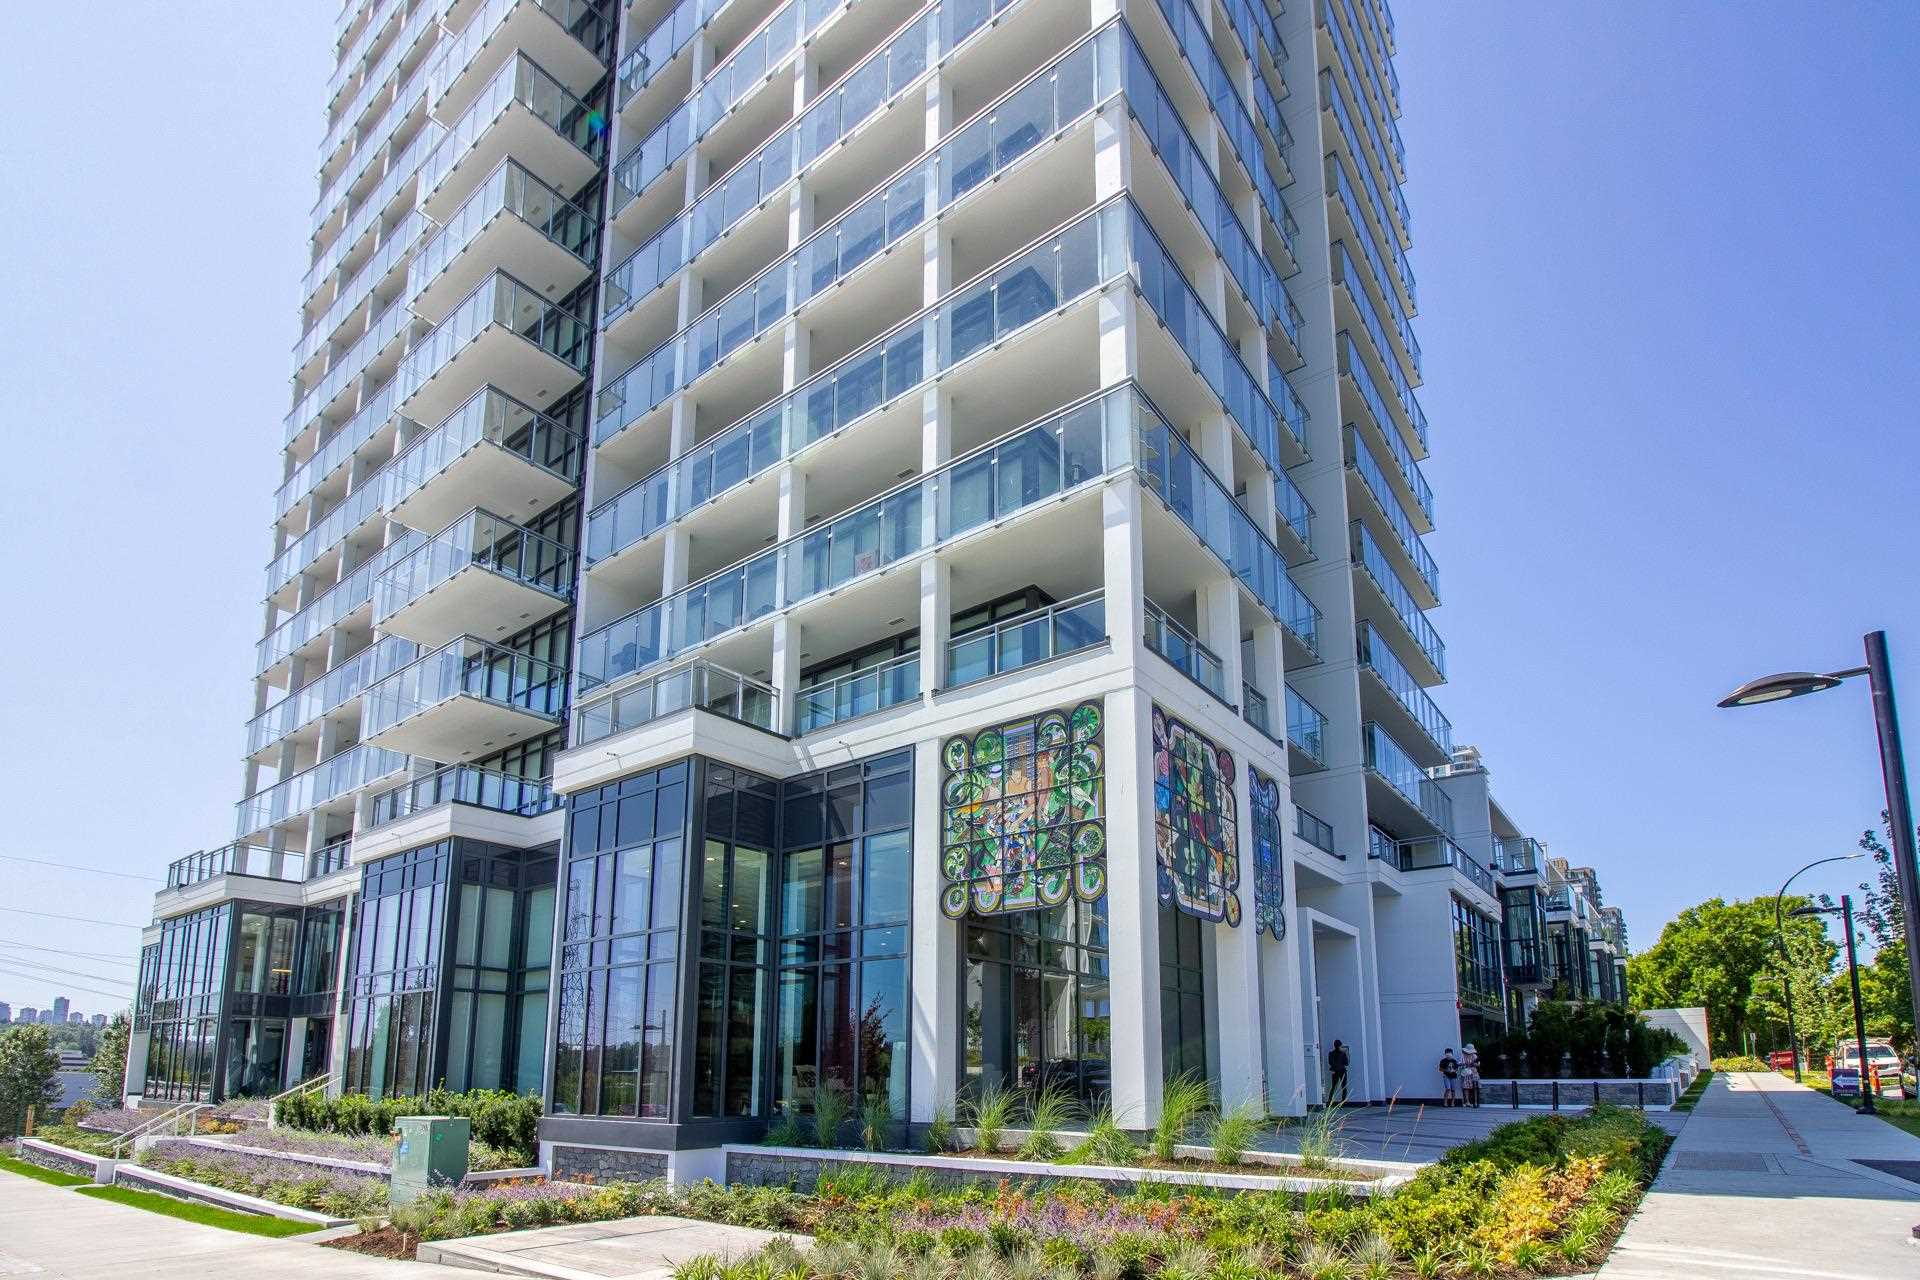 405 4488 JUNEAU STREET - Brentwood Park Apartment/Condo for sale, 1 Bedroom (R2605568) - #1